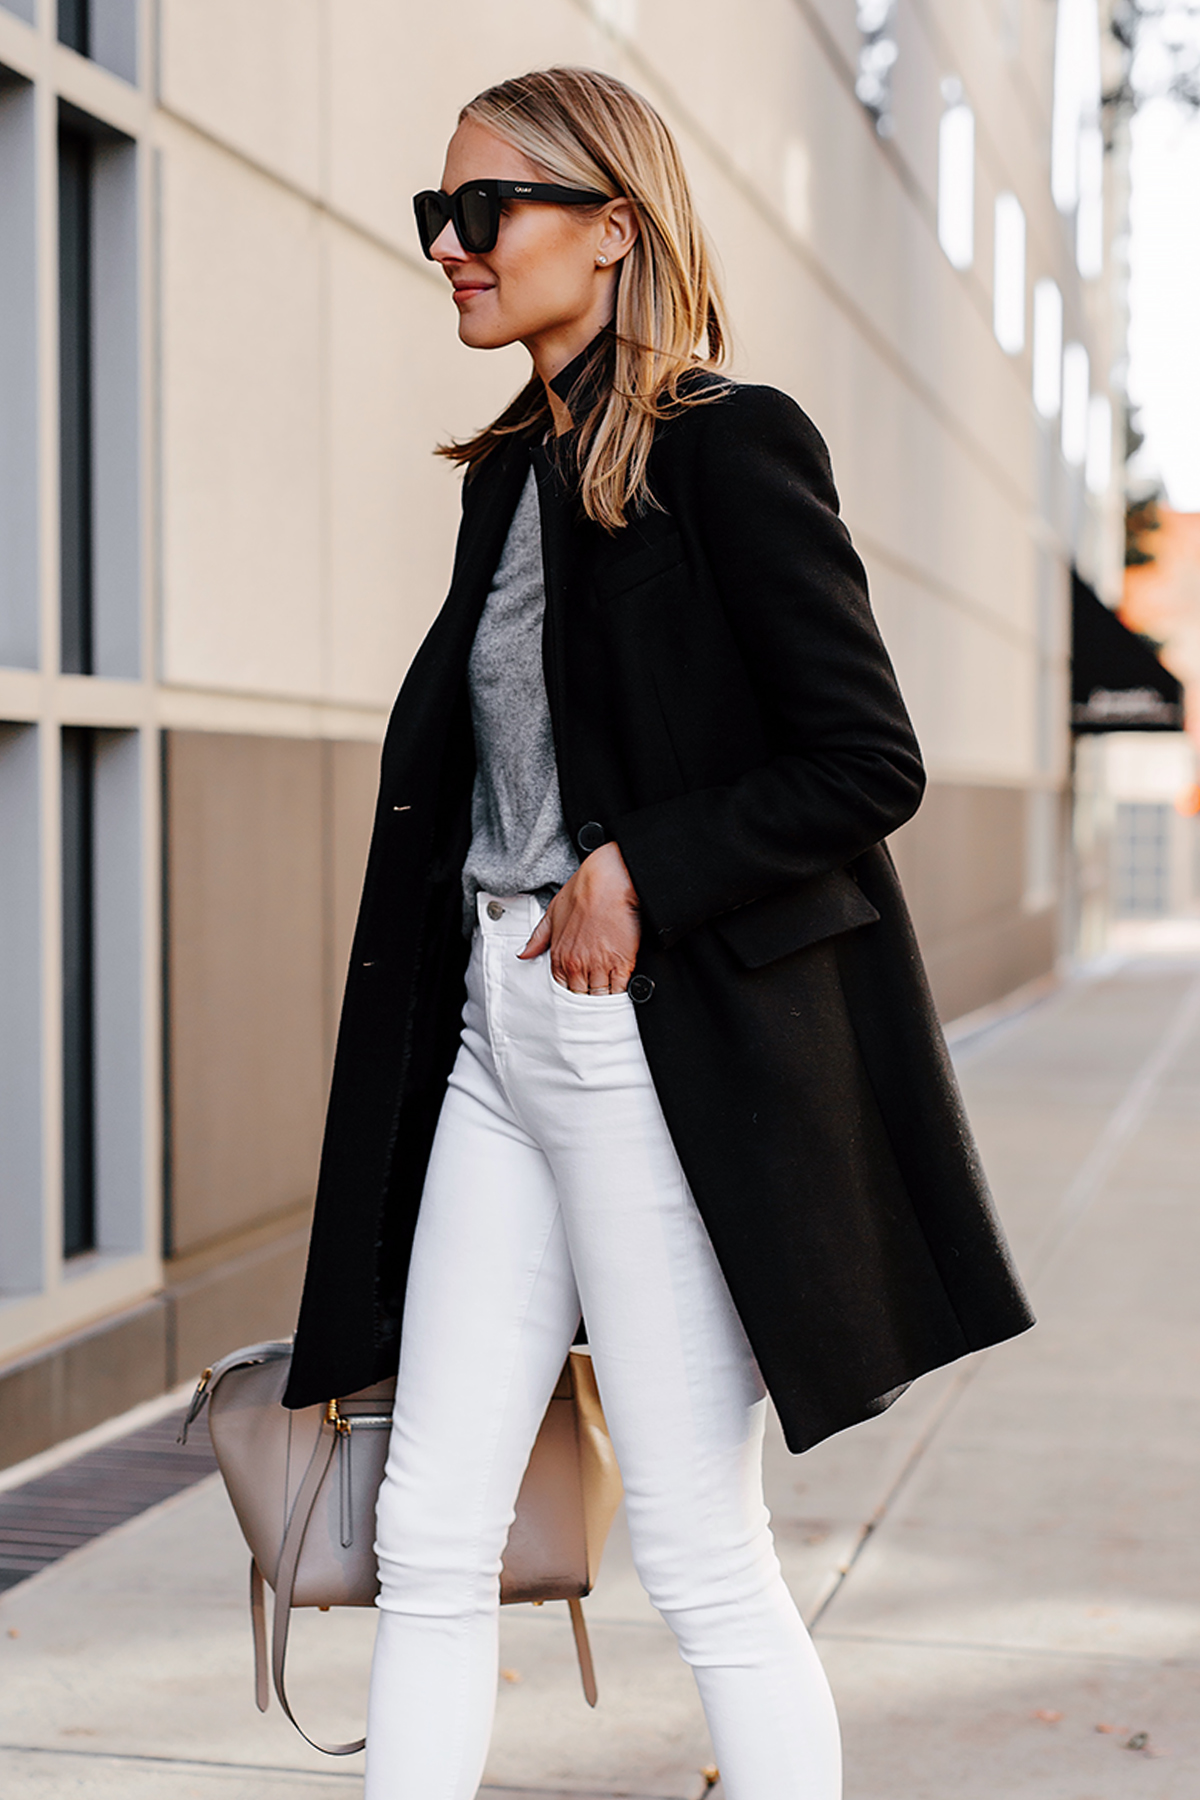 Blonde Woman Wearing Black Wool Coat Grey Sweater White Skinny Jeans Fashion Jackson San Diego Fashion Blogger Street Style